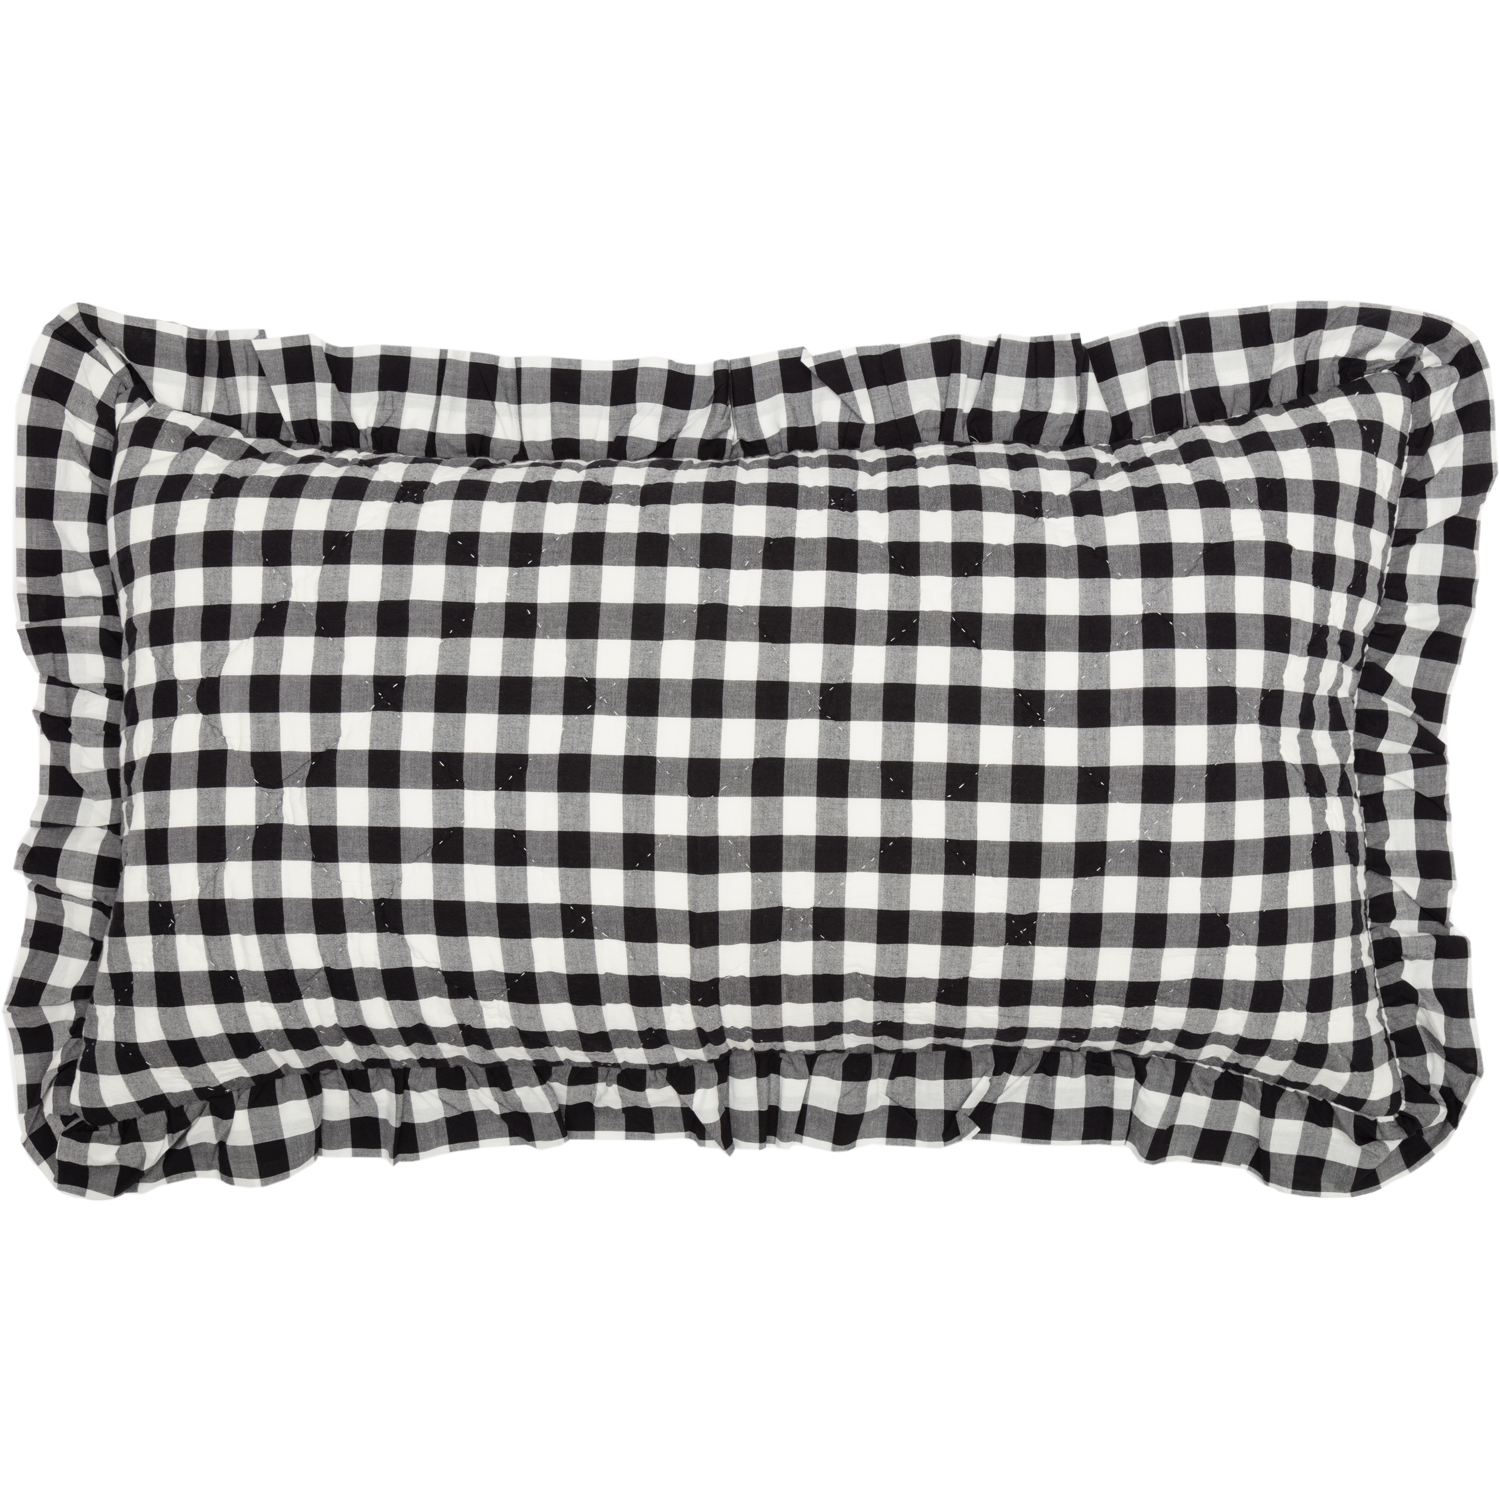 Annie Buffalo Black Check Ruffled King Sham 21x37